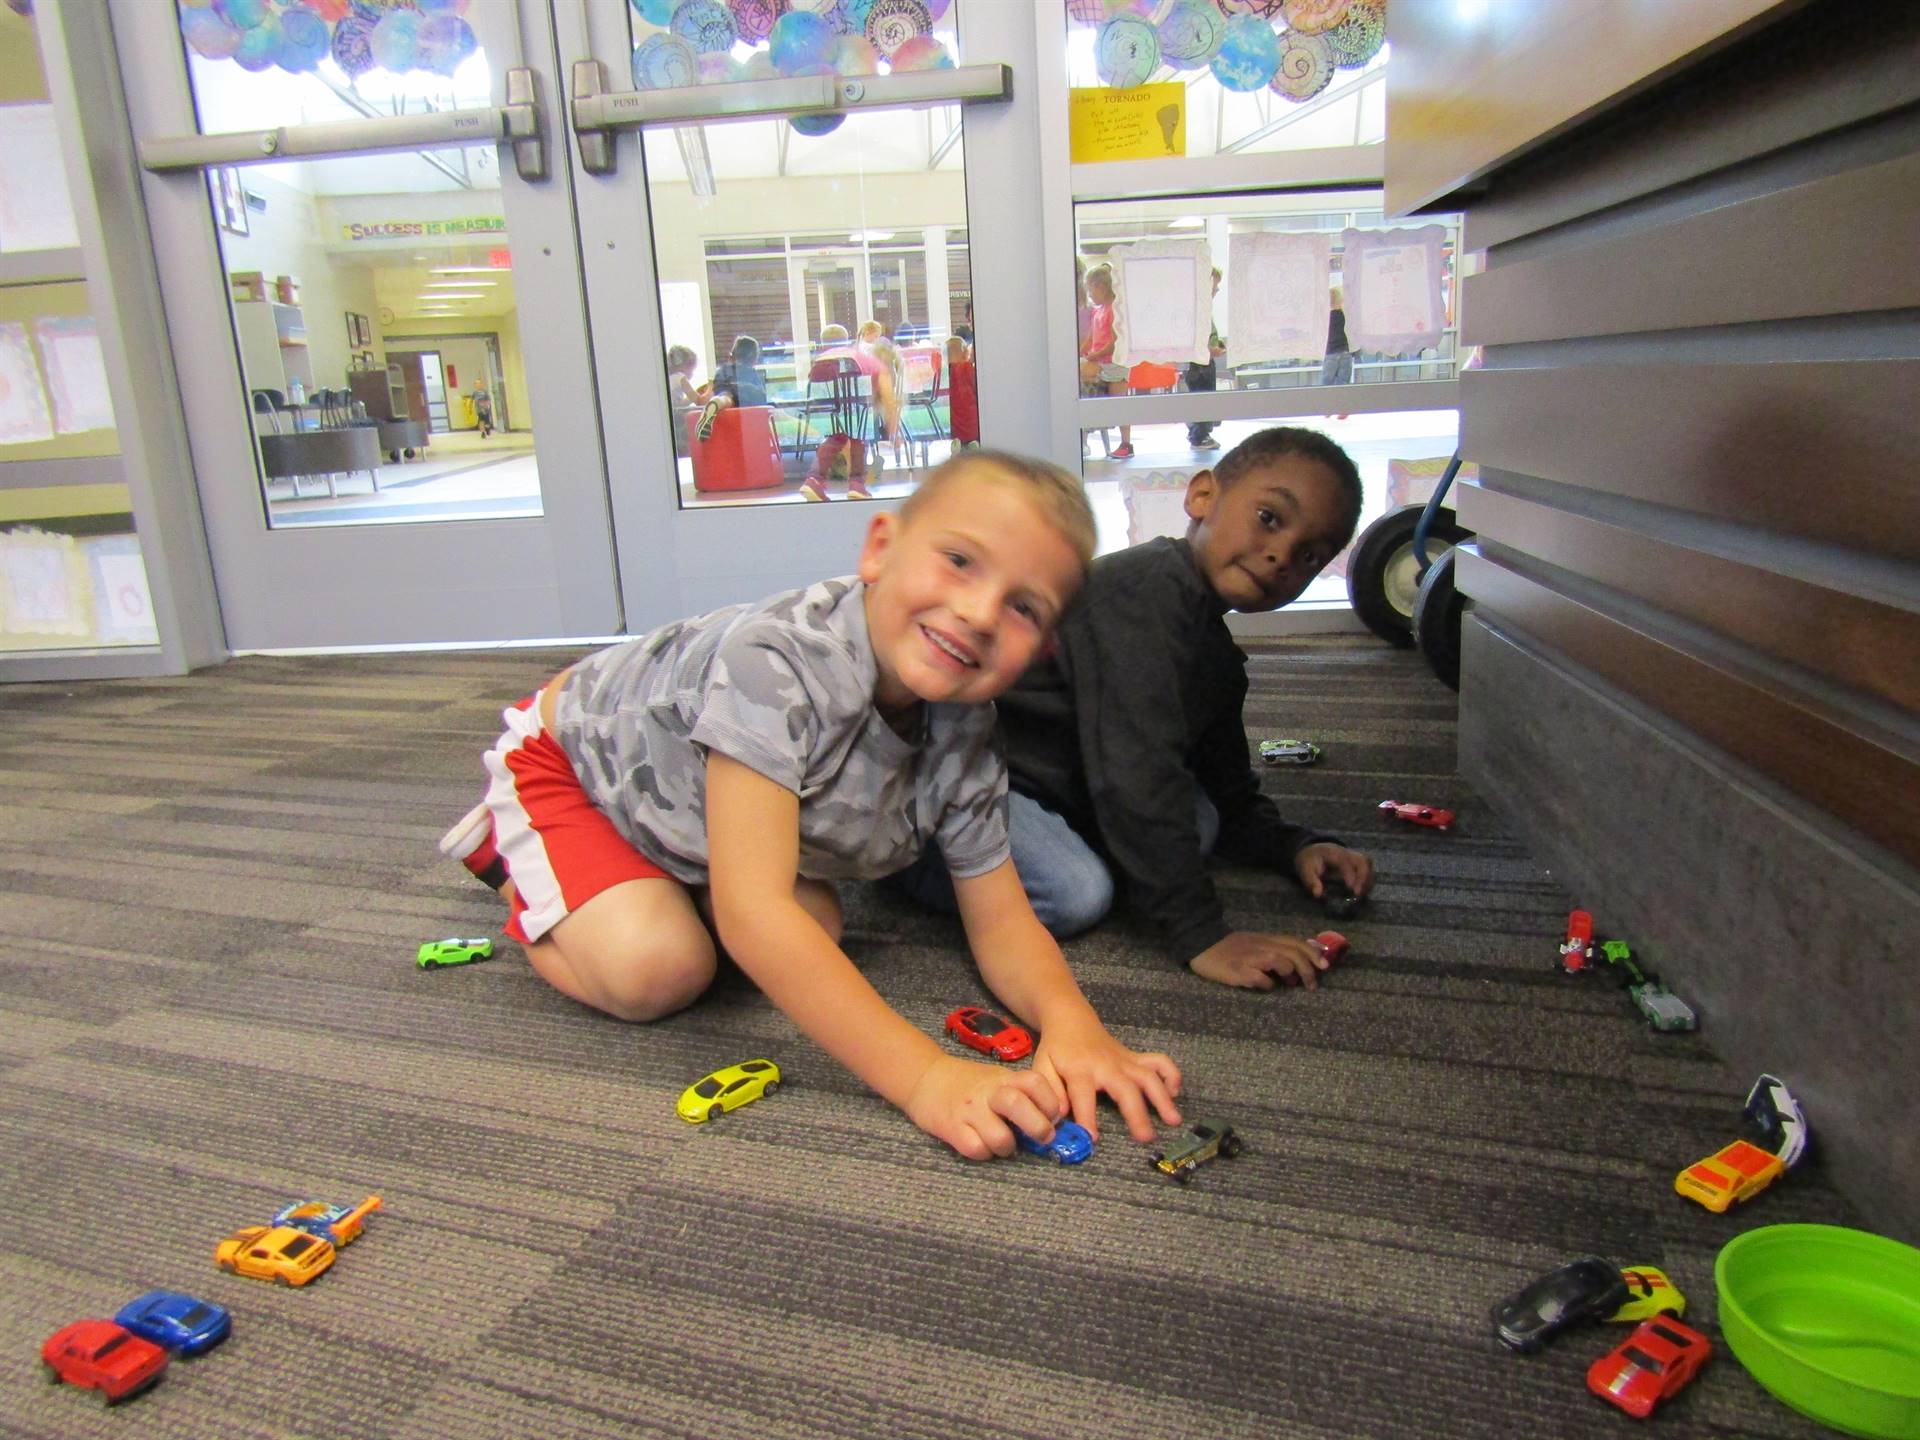 Boys playing with cars at indoor recess